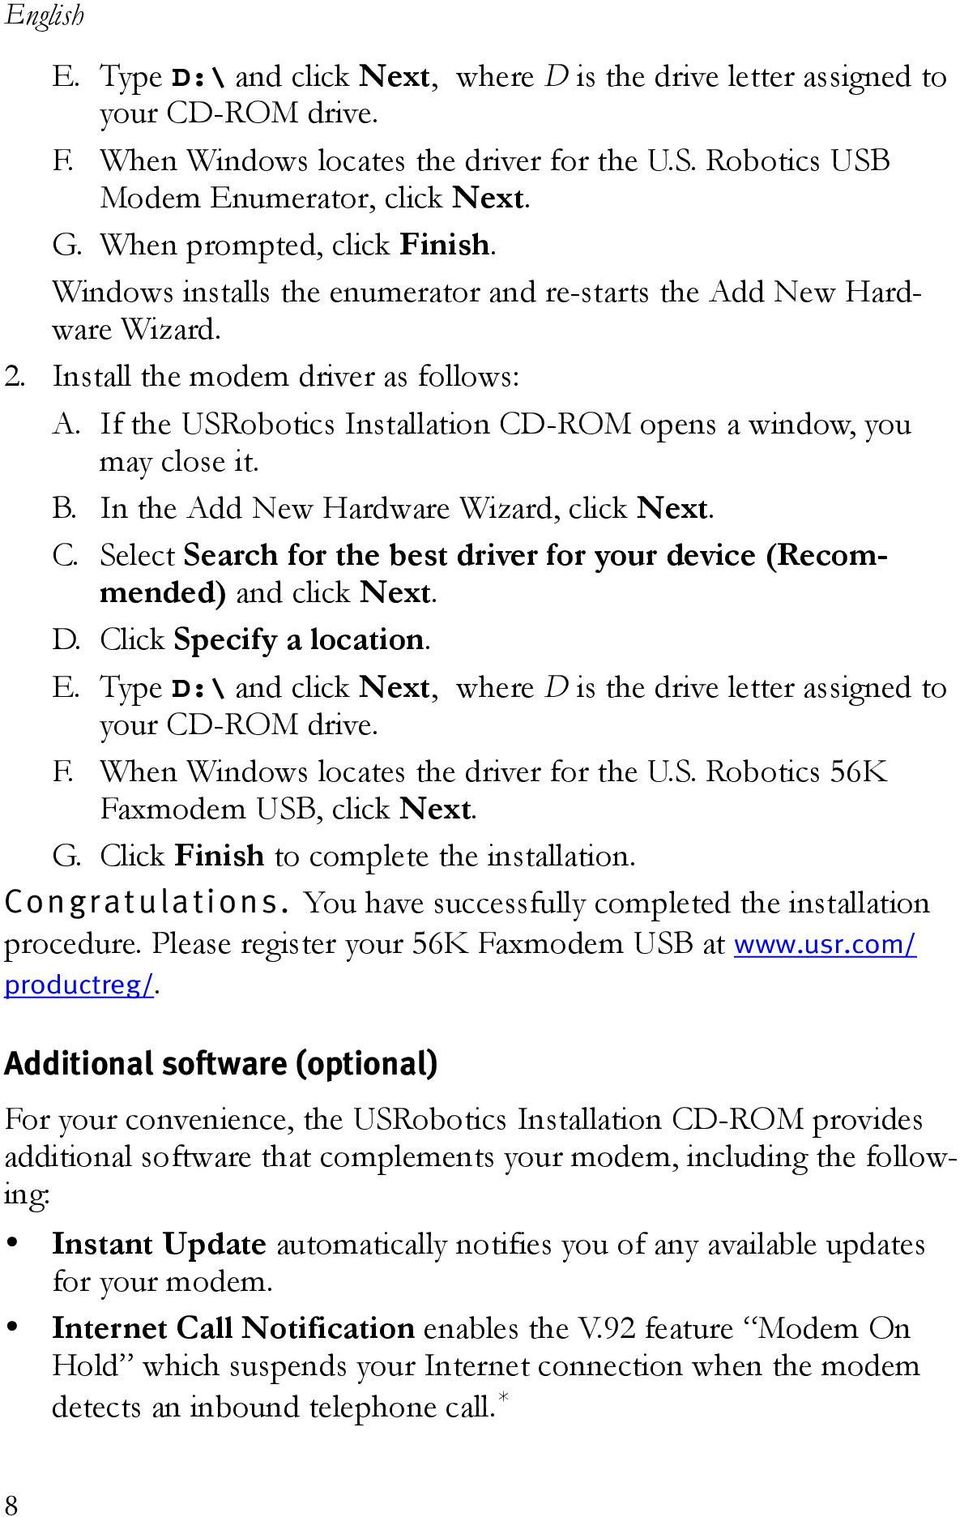 If the USRobotics Installation CD-ROM opens a window, you may close it. B. In the Add New Hardware Wizard, click Next. C. Select Search for the best driver for your device (Recommended) and click Next.